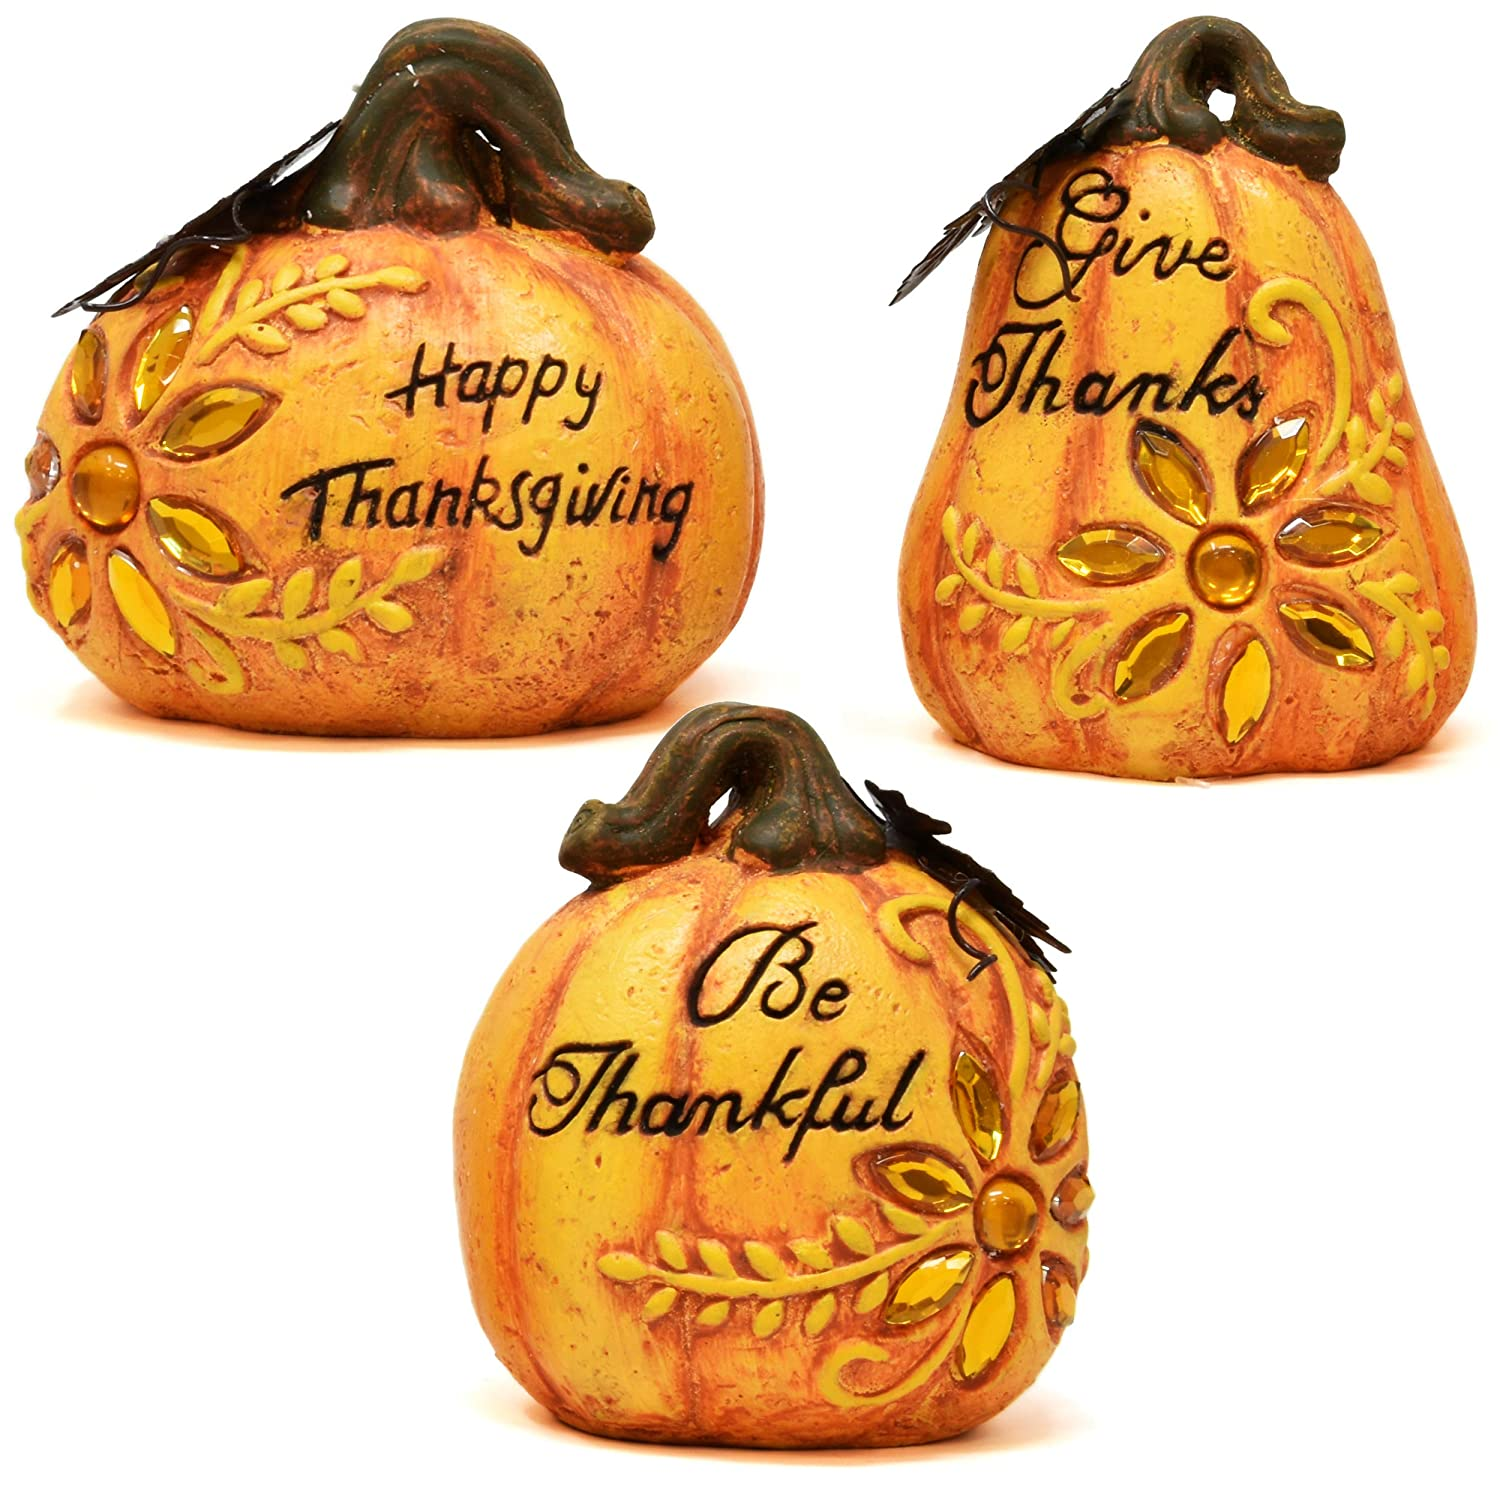 Gift Boutique Fall Harvest Pumpkin Decorations 3 Piece Set Inspirational Thanksgiving and Autumn Tabletop Home Decor Rustic, Country Decorative Props Kitchen Living Room